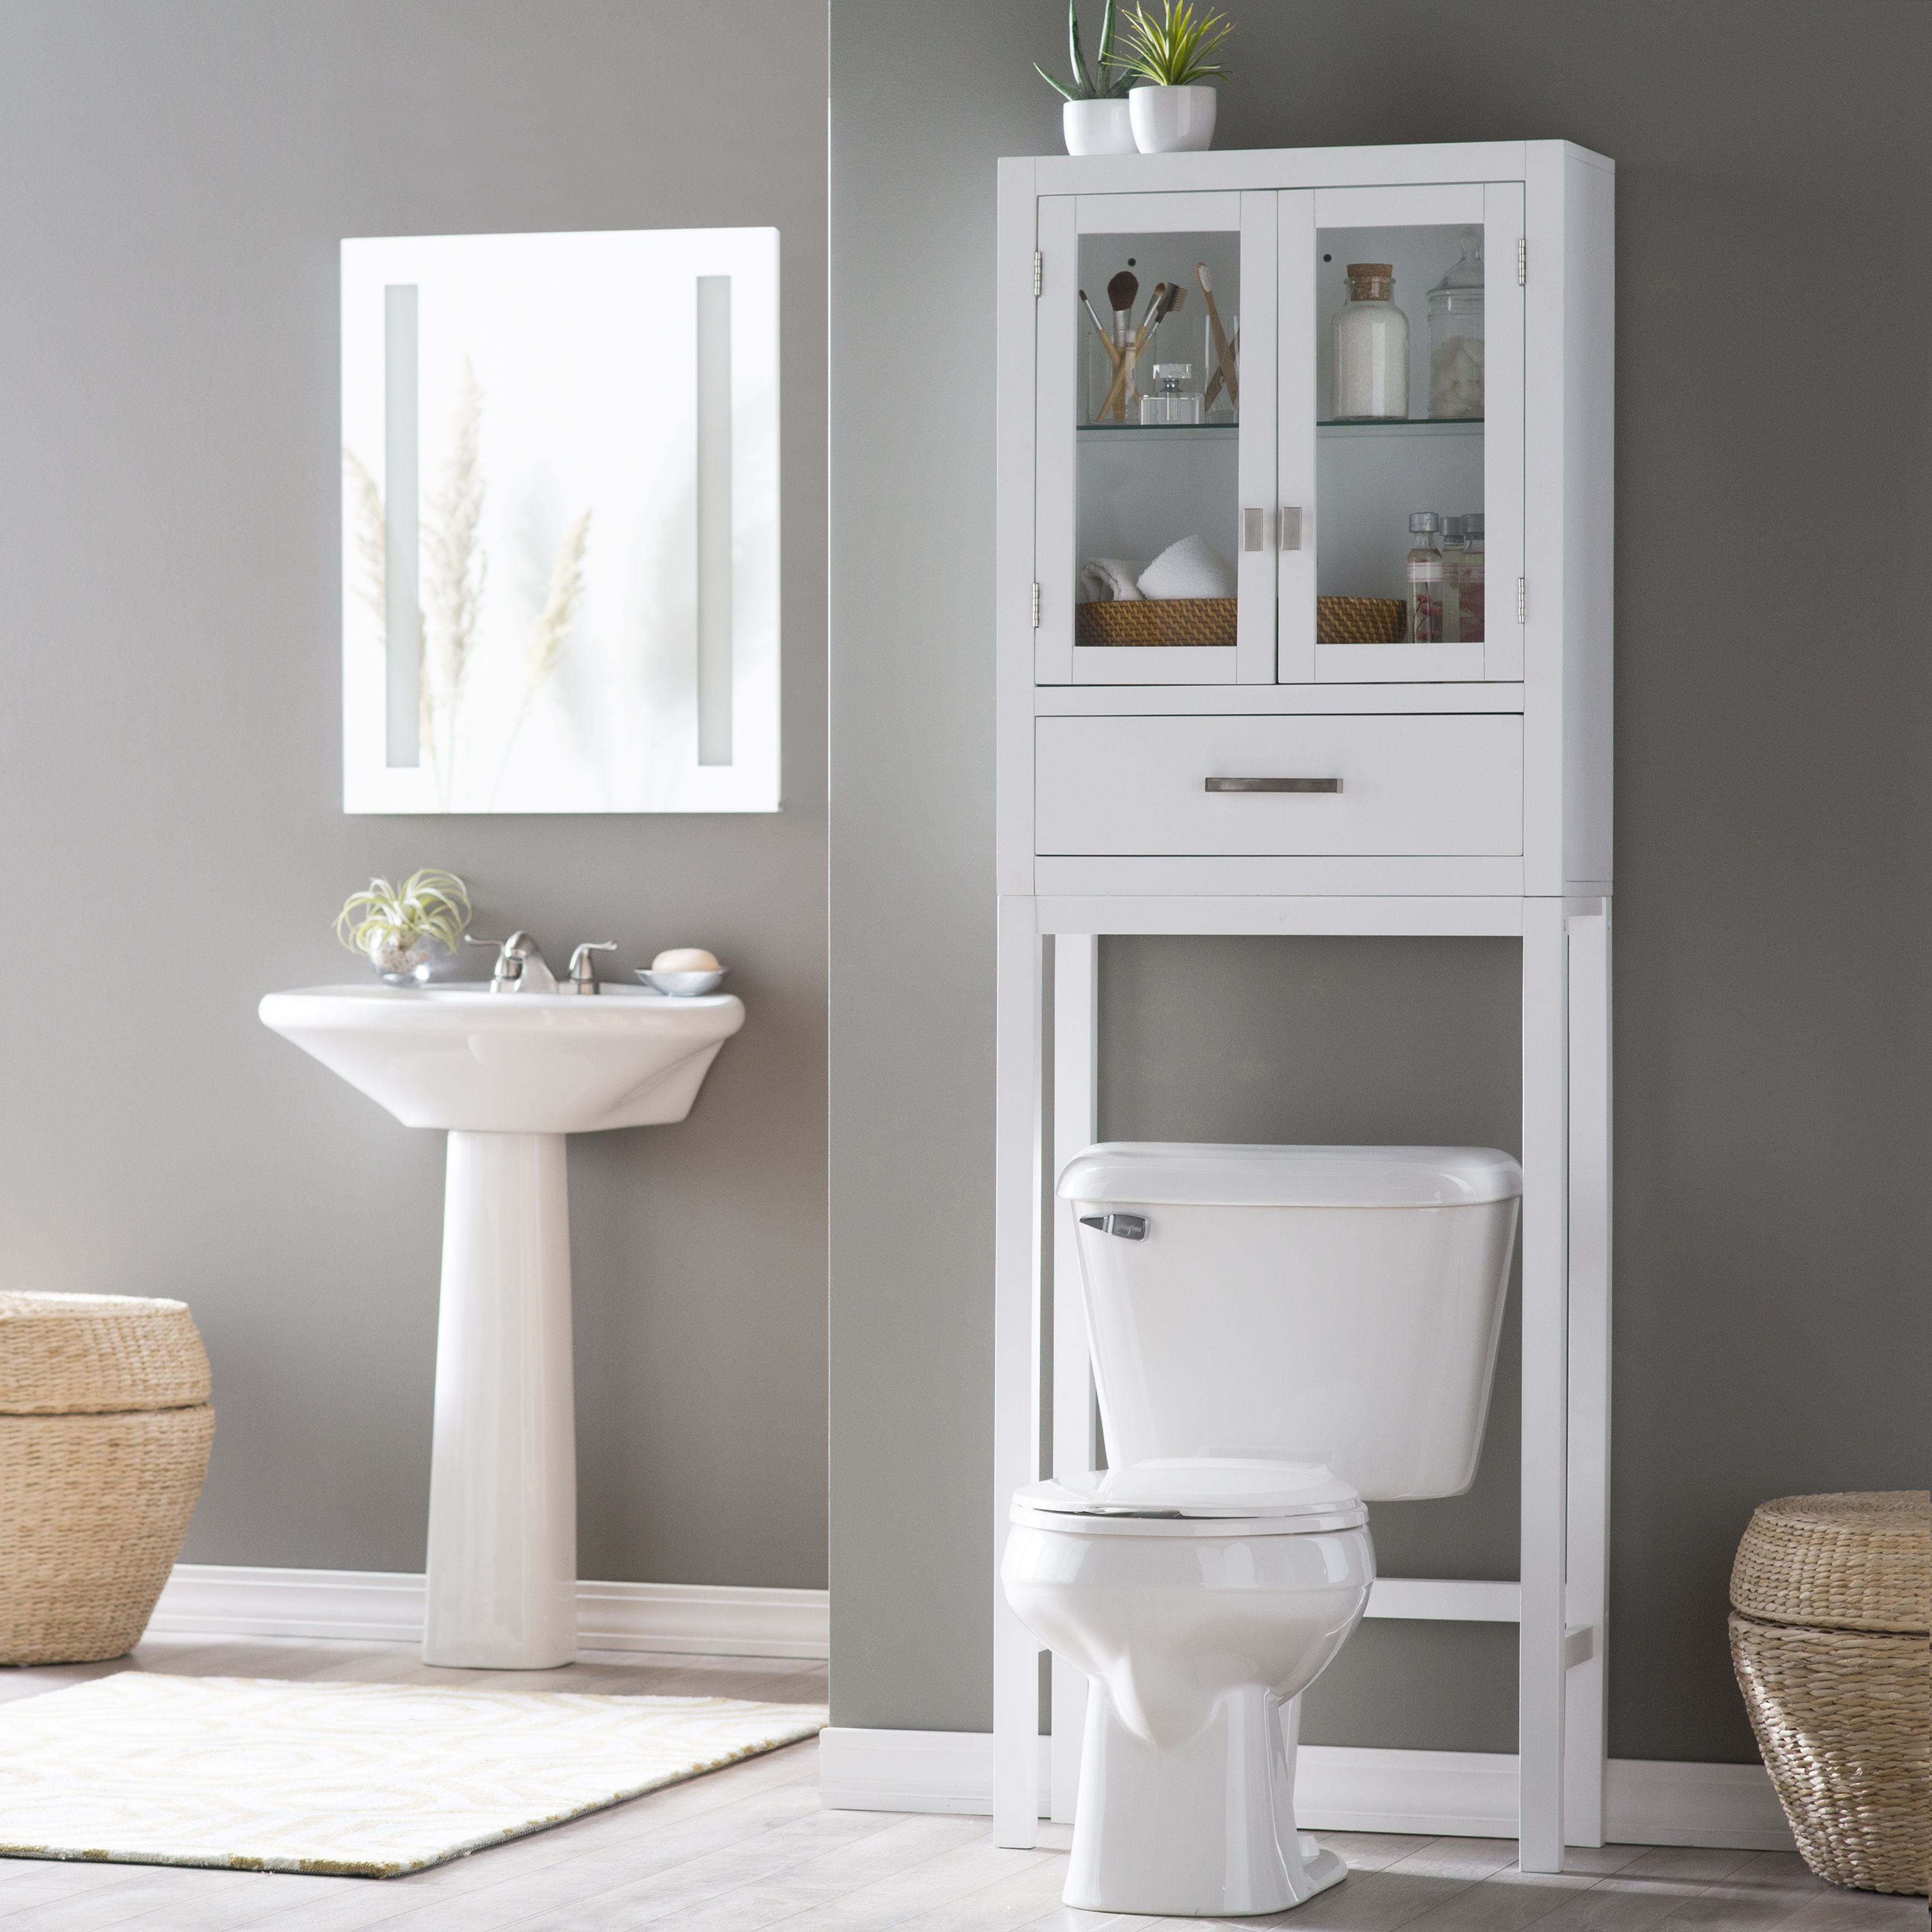 Belham Living Longbourn Over The Toilet Space Saver With Removable Legs |  Hayneedle